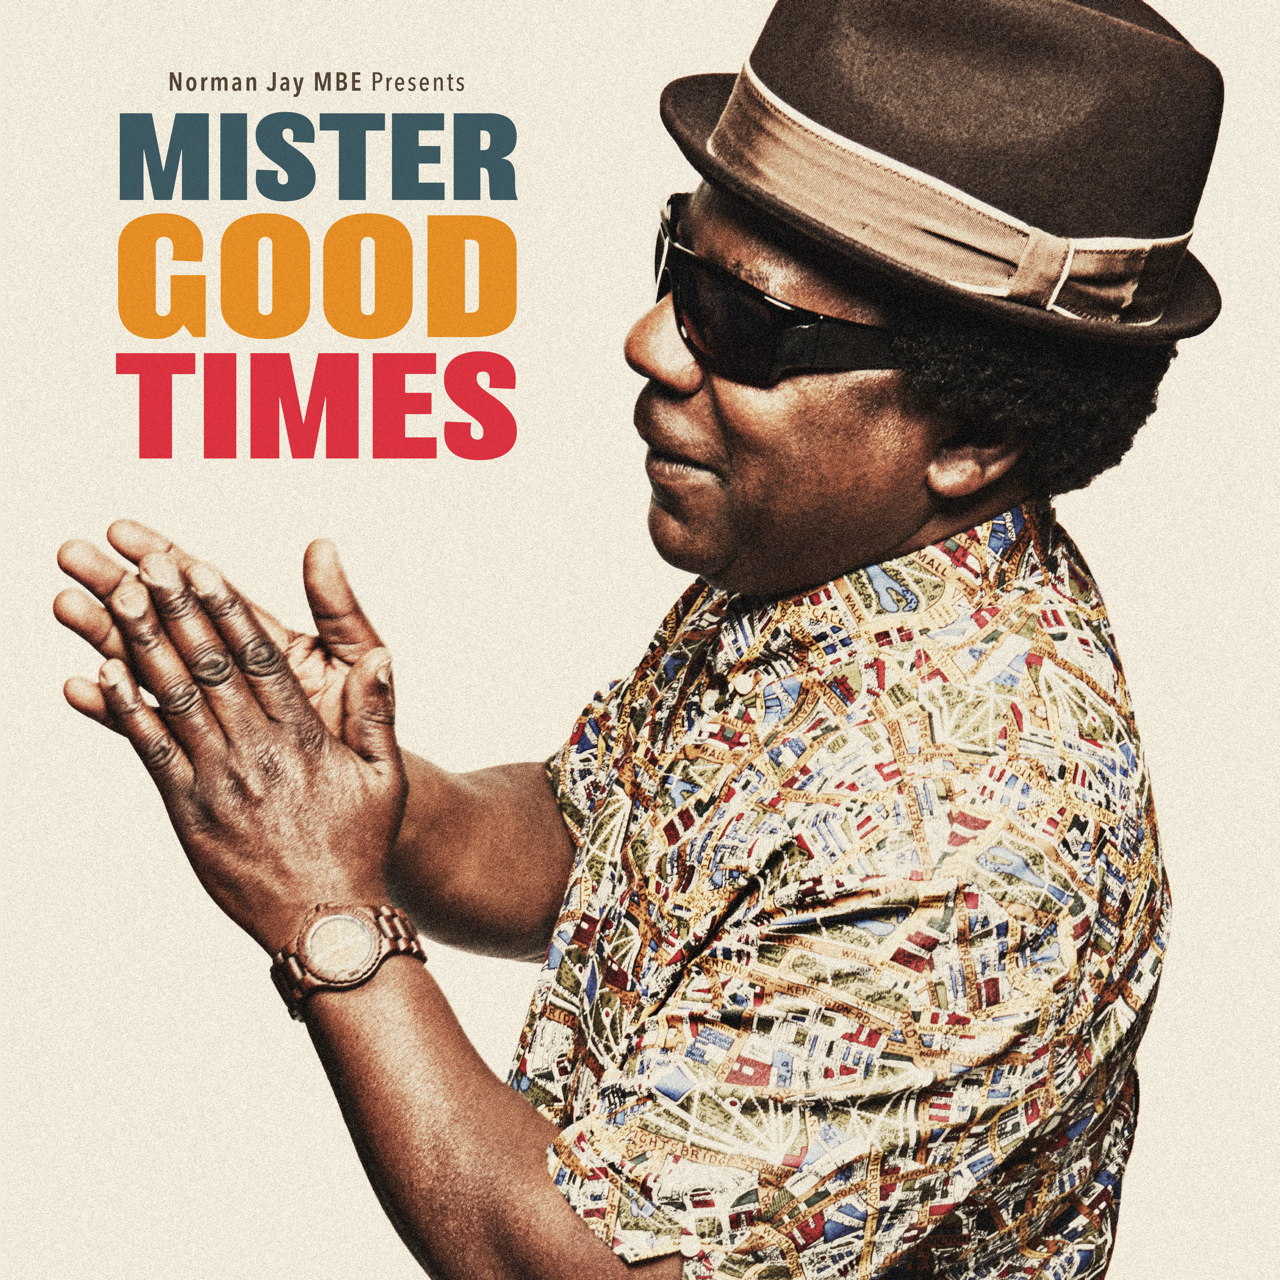 Norman Jay MBE presents Mister Good Times